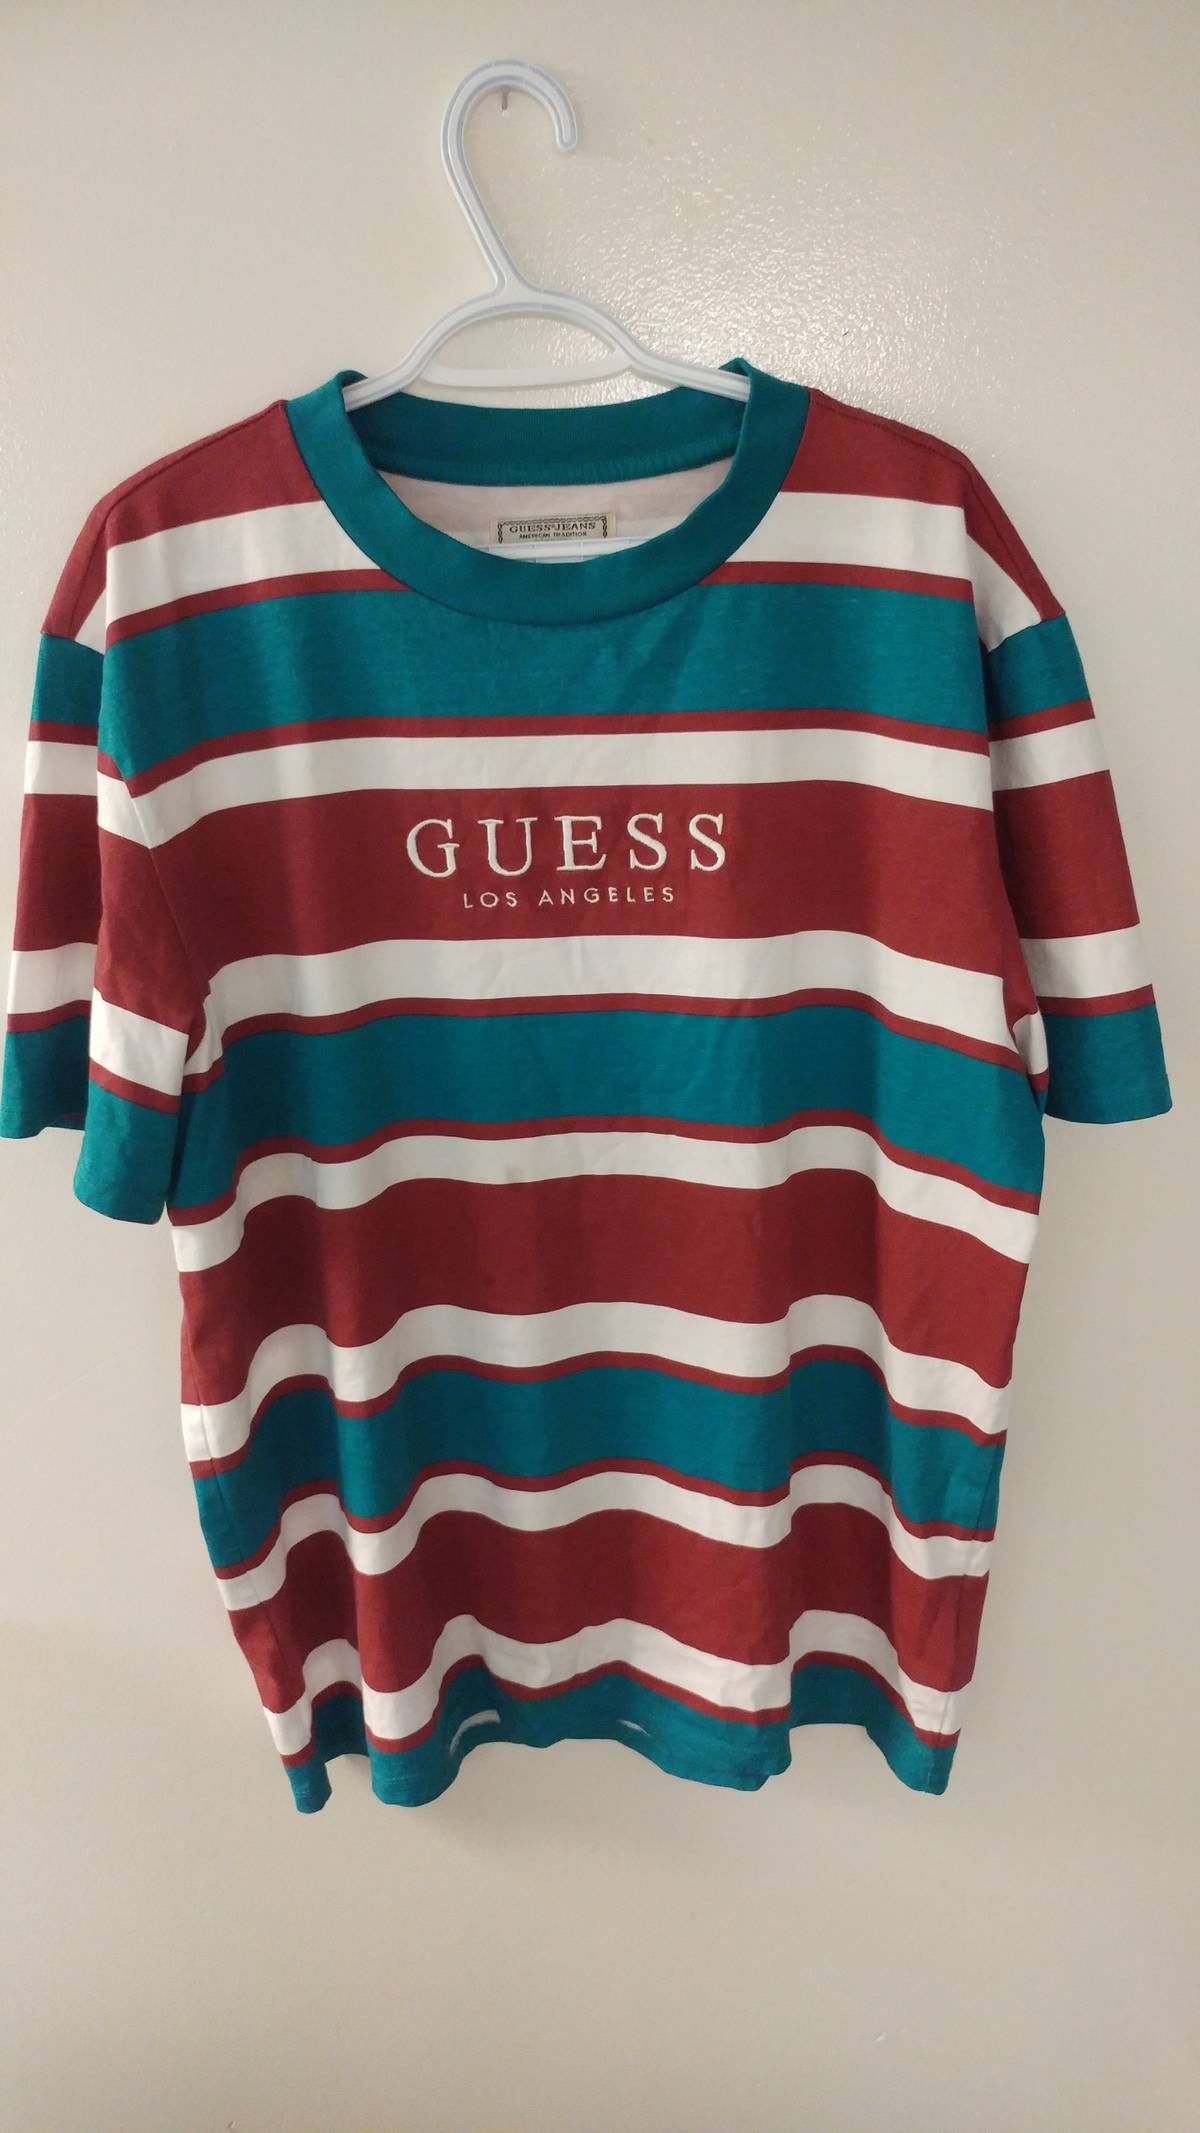 acb9ef0c1517 Guess Guess Originals '81 Oversized Peer Striped Tee   Grailed